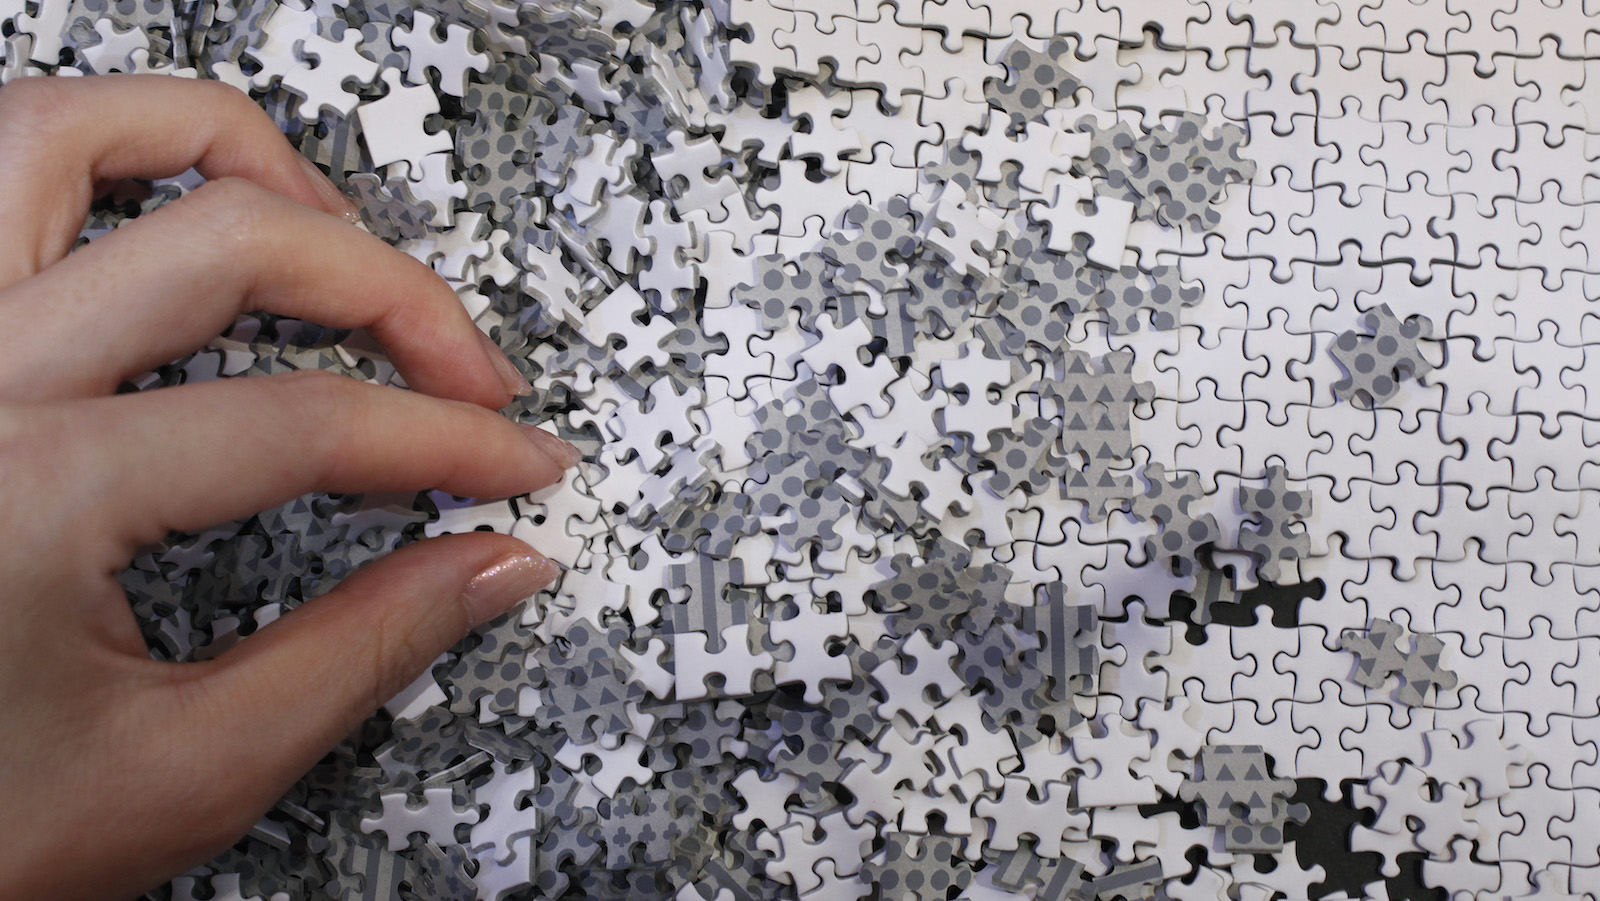 An employee of puzzle maker Beverly holds a piece of the company's white micro 1000 piece jigsaw puzzle at the International Toy Show in Tokyo June 14, 2012. The four-day event will open to public on Saturday, showcasing a total of about 35,000 products by 144 toy manufacturers. REUTERS/Yuriko Nakao (JAPAN - Tags: SOCIETY) - GM2E86E1IIS01